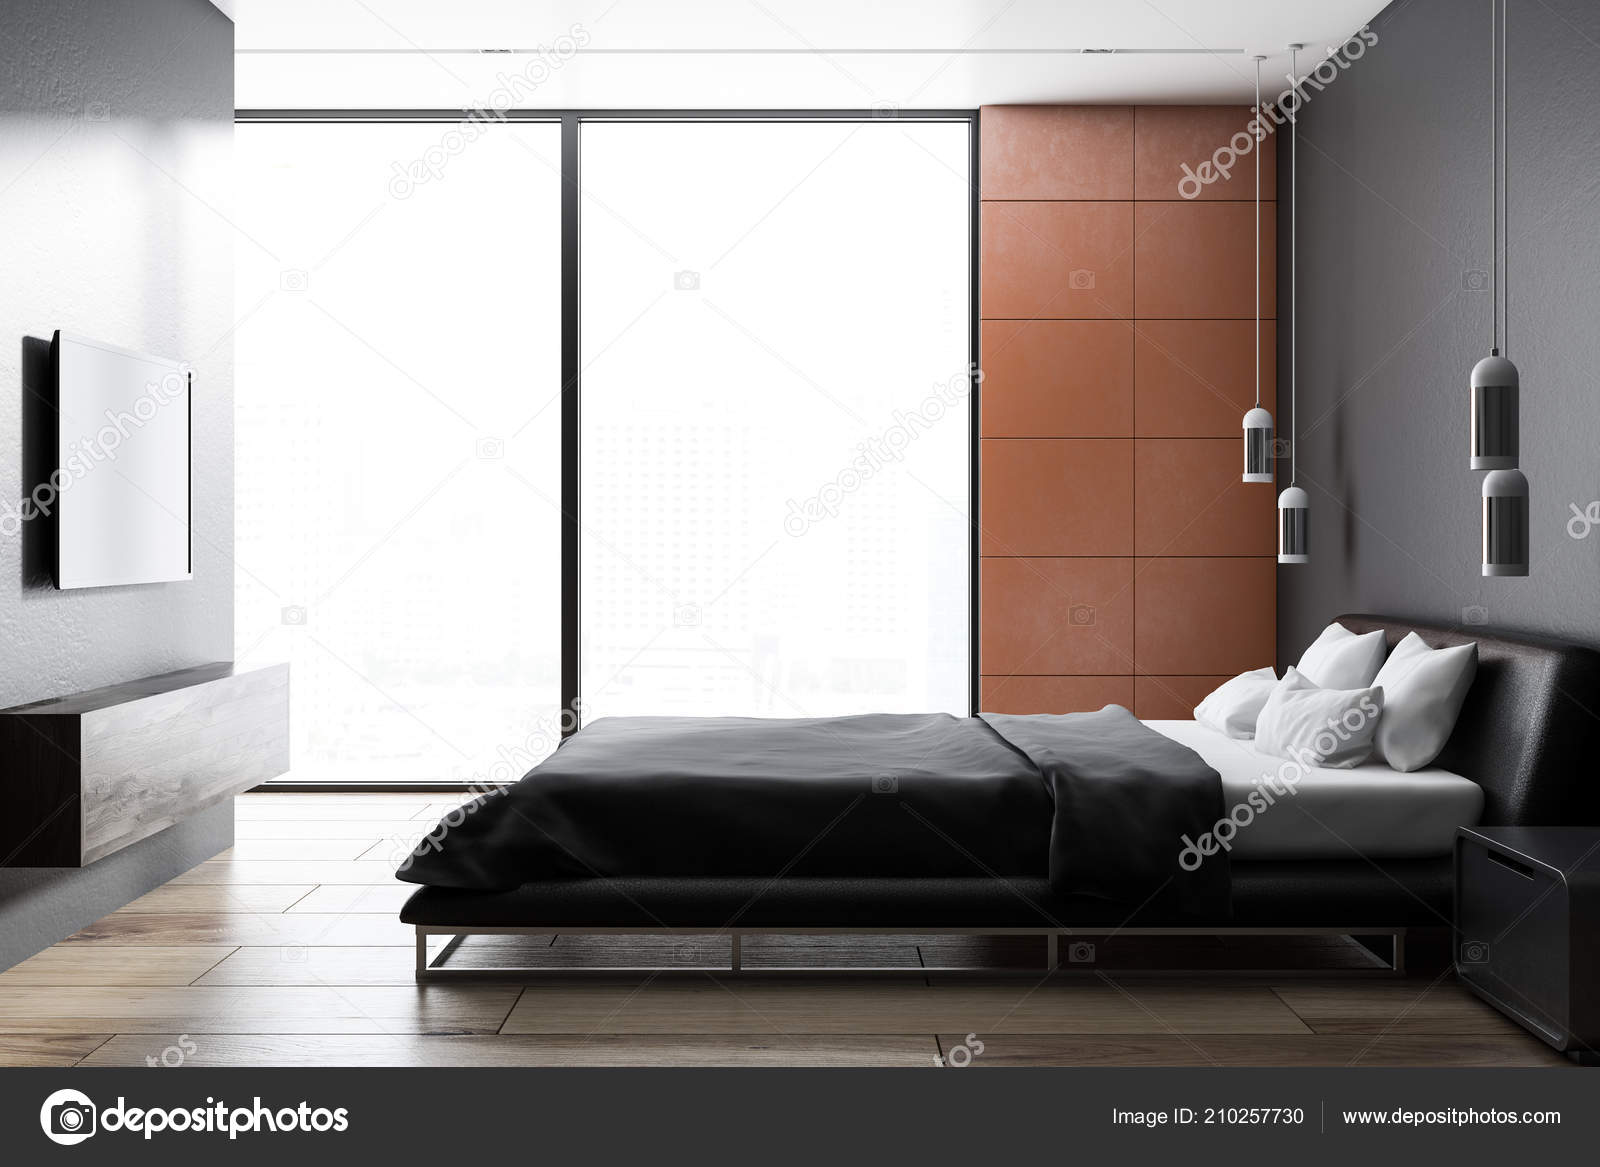 Bedroom Floor Tiles Design Ideas Modern Bedroom Interior Orang Tile Walls Wooden Floor Gray Master Stock Photo C Denisismagilov 210257730